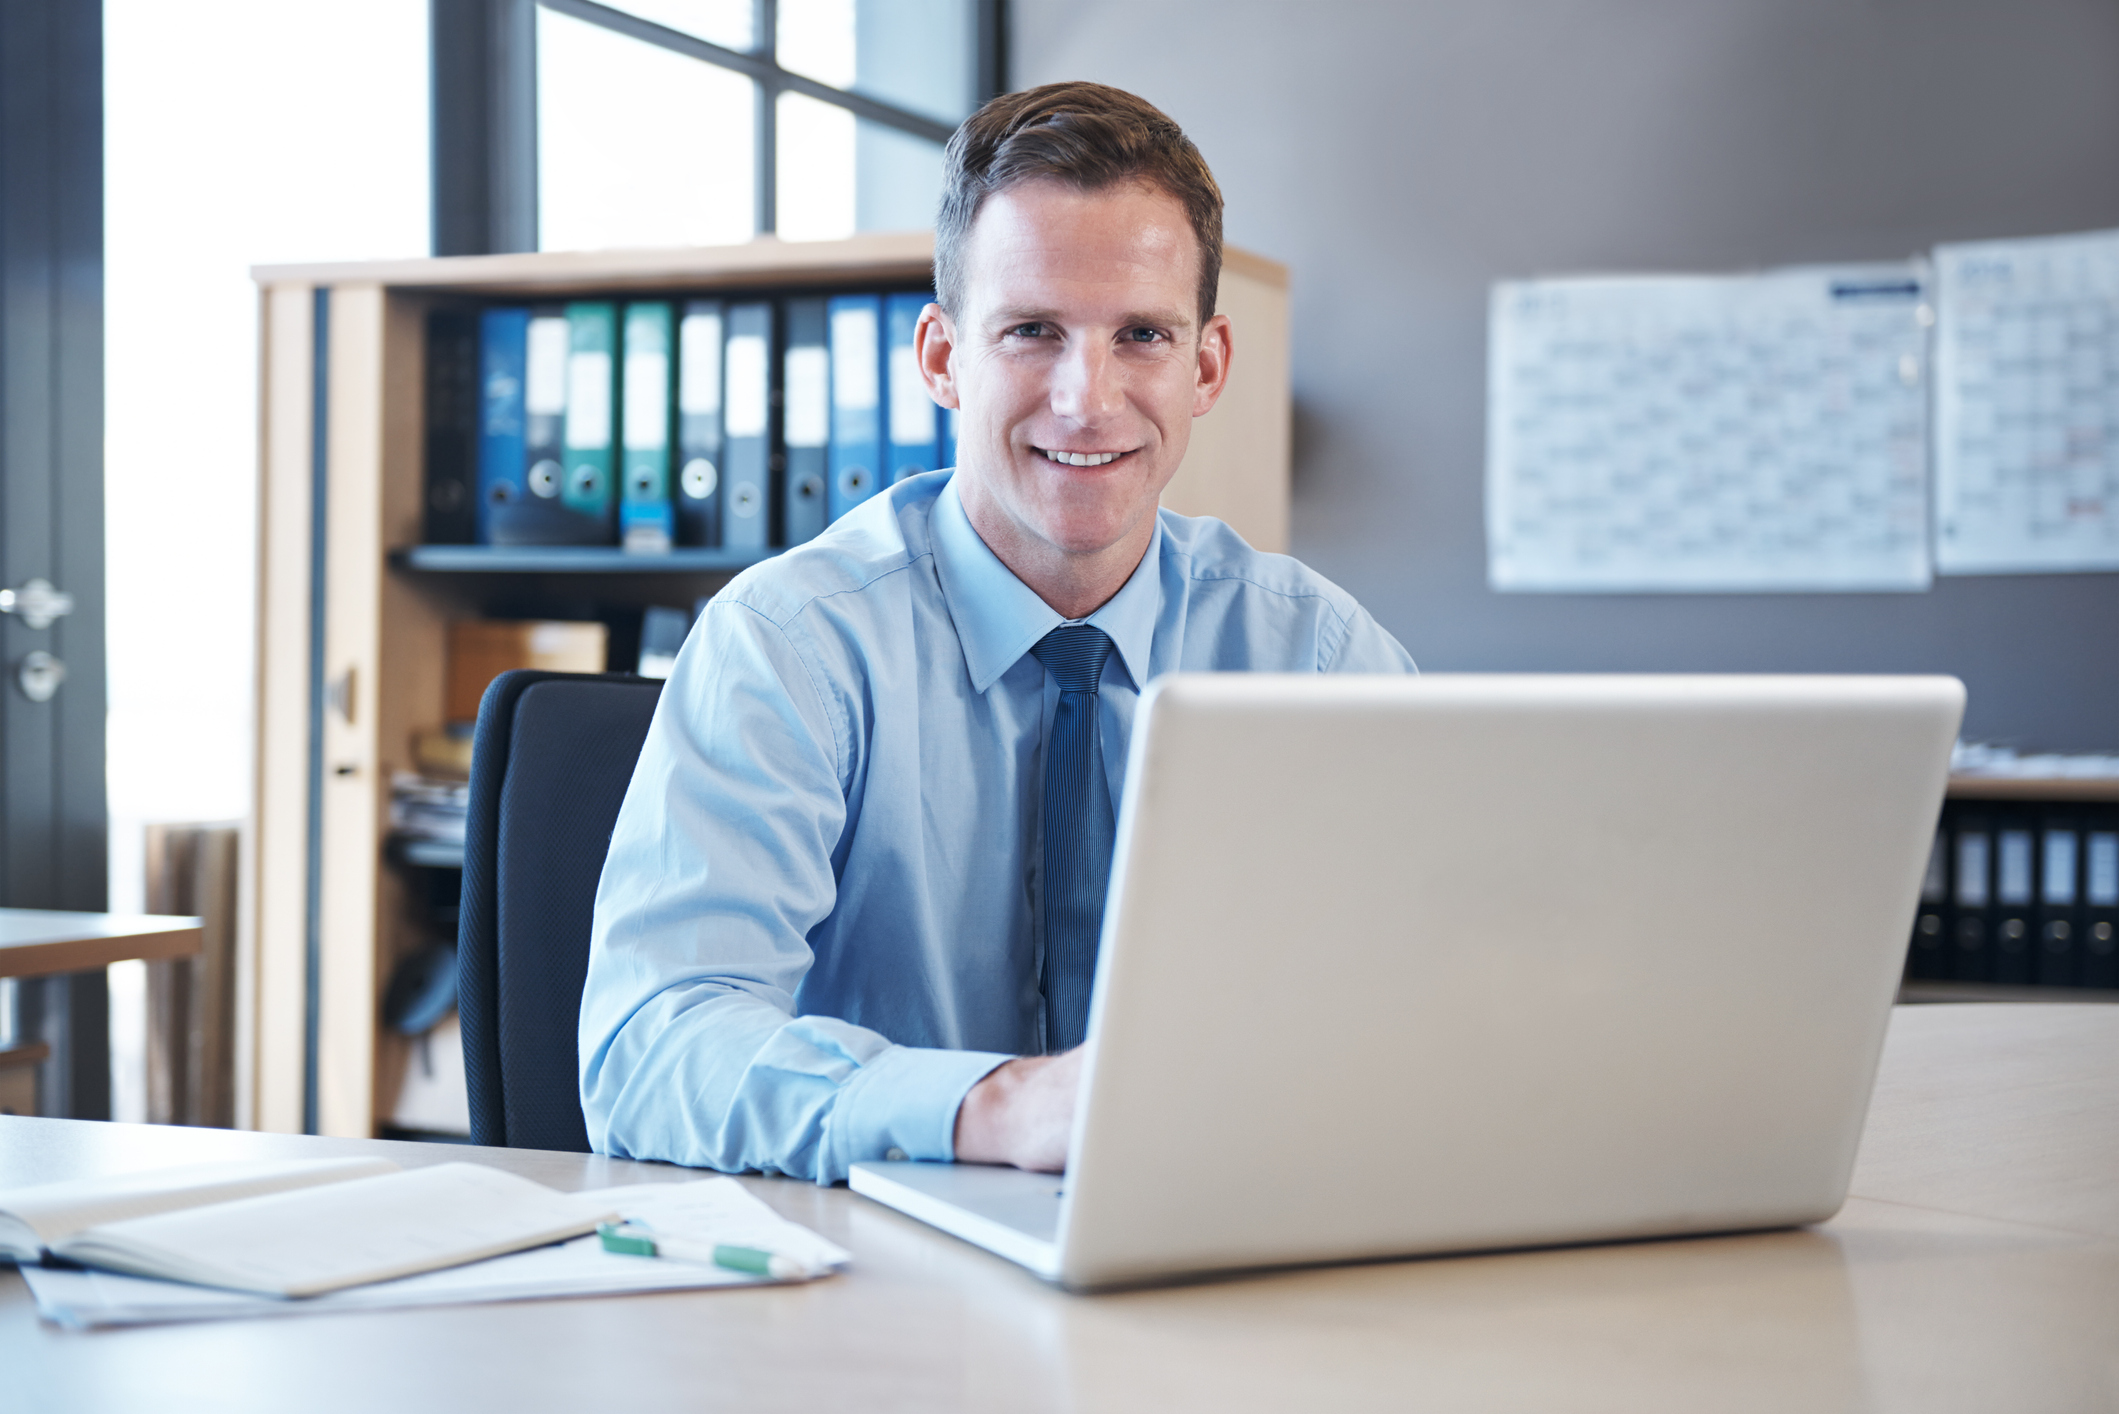 Financial advisor in front of laptop representing virtual marketing